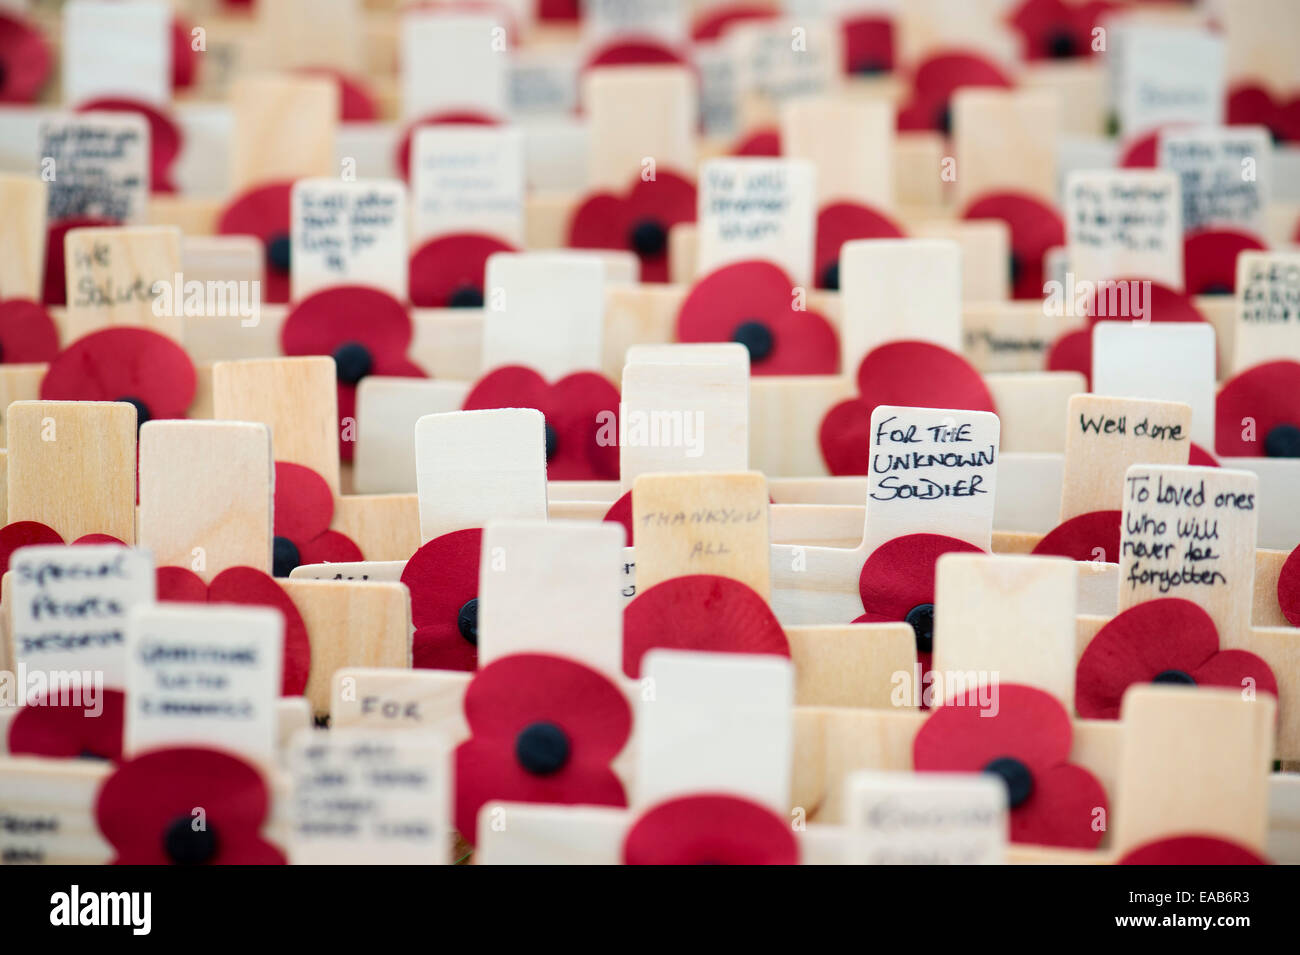 For The Unknown Soldier. Remembrance crosses and poppies - Stock Image